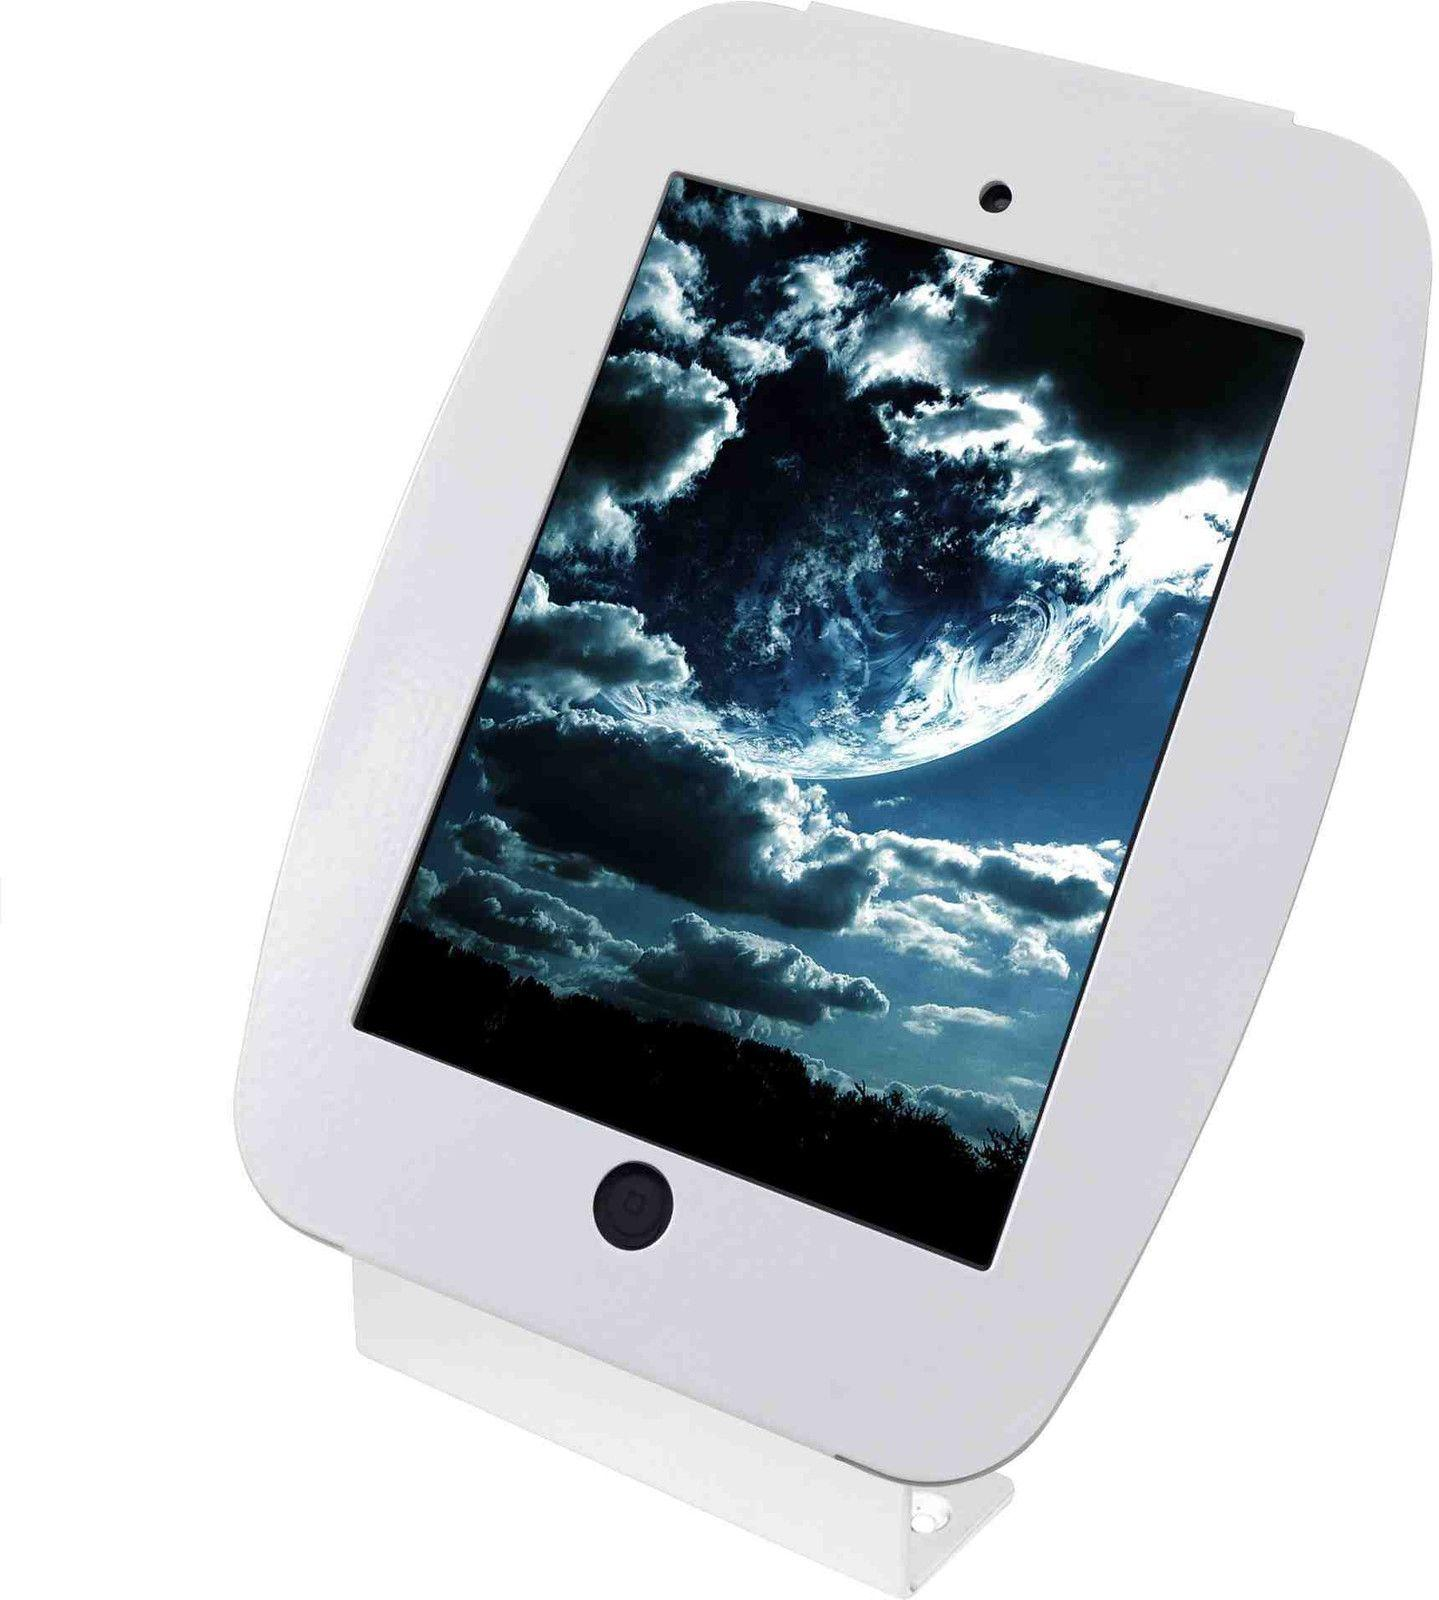 Maclocks Space Mini Enclosure Kiosk (iPad mini) V598-5